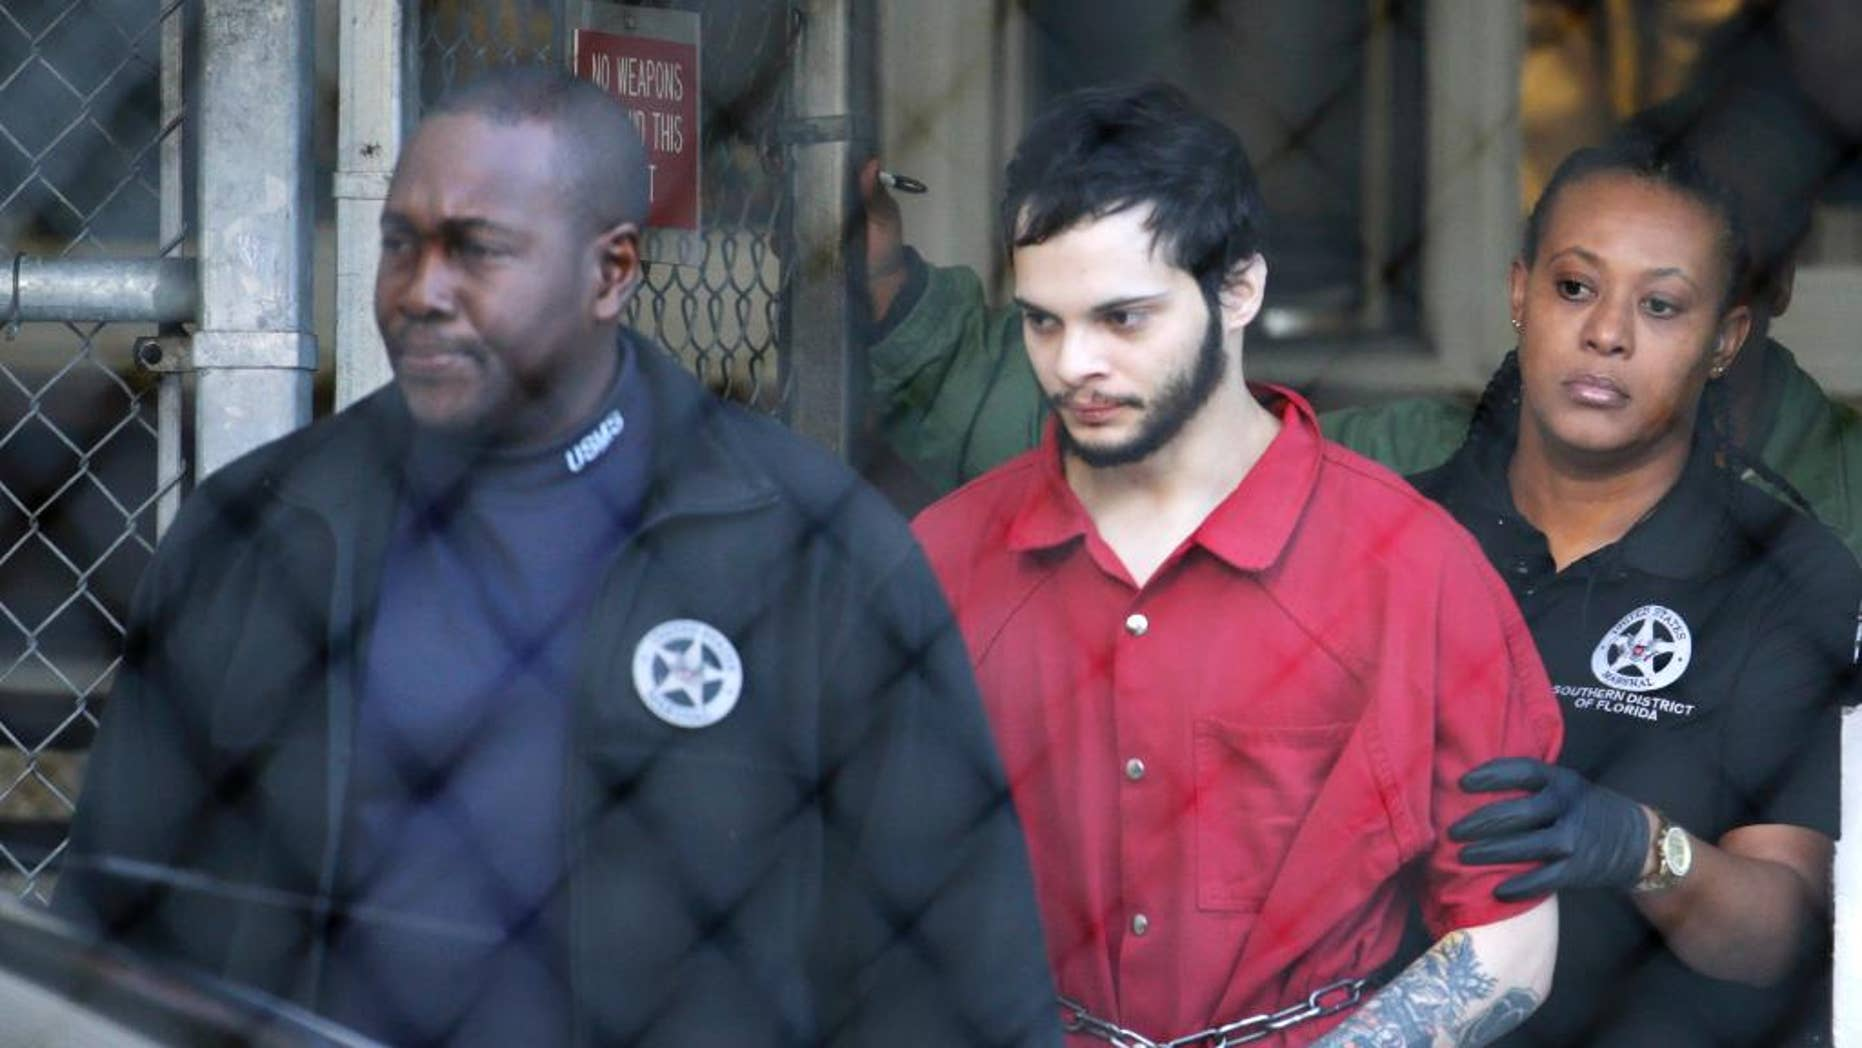 FILE- In this Jan. 30, 2017, file photo, Esteban Santiago, center, is led from the Broward County jail for an arraignment in federal court in Fort Lauderdale, Fla. Prosecutors and defense attorneys for Santiago said at a hearing Wednesday, March 15, 2017, the death penalty decision process has just begun. Santiago is accused in the Jan. 6 shooting that killed five and wounded six at Fort Lauderdale-Hollywood International Airport. (AP Photo/Lynne Sladky, File)